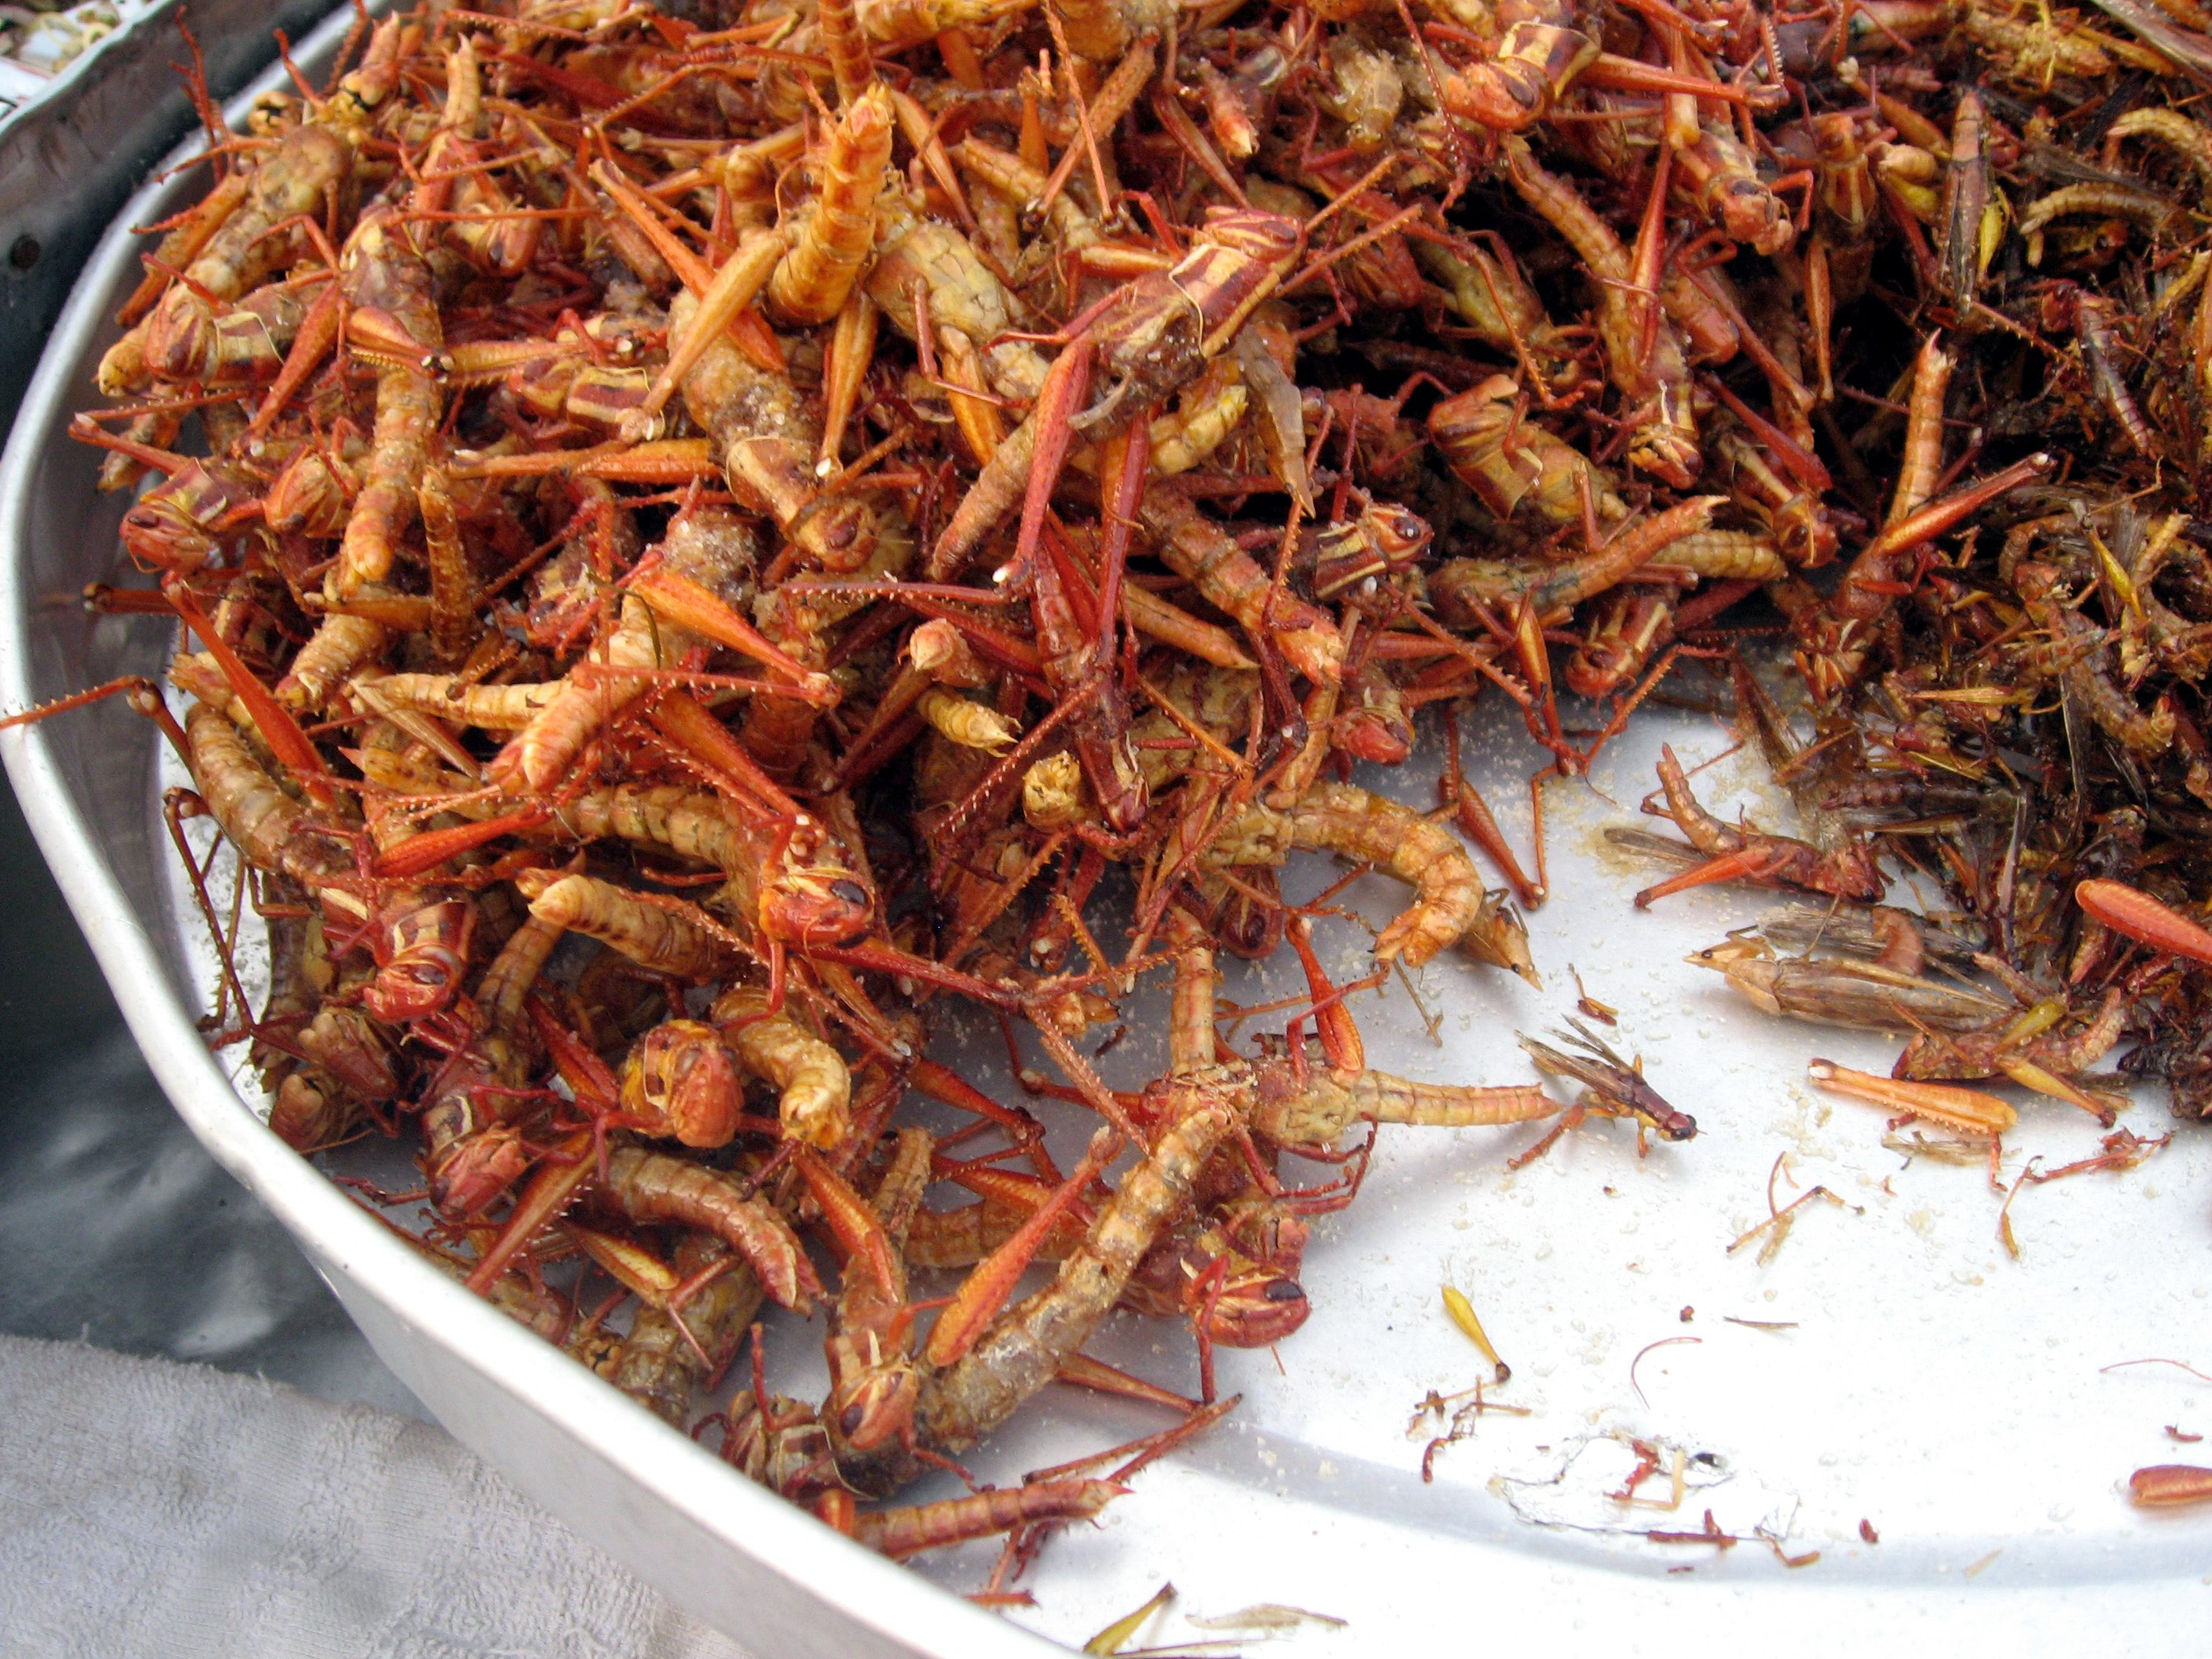 File:Fried grasshoppers in Bangkok.jpg - Wikimedia Commons